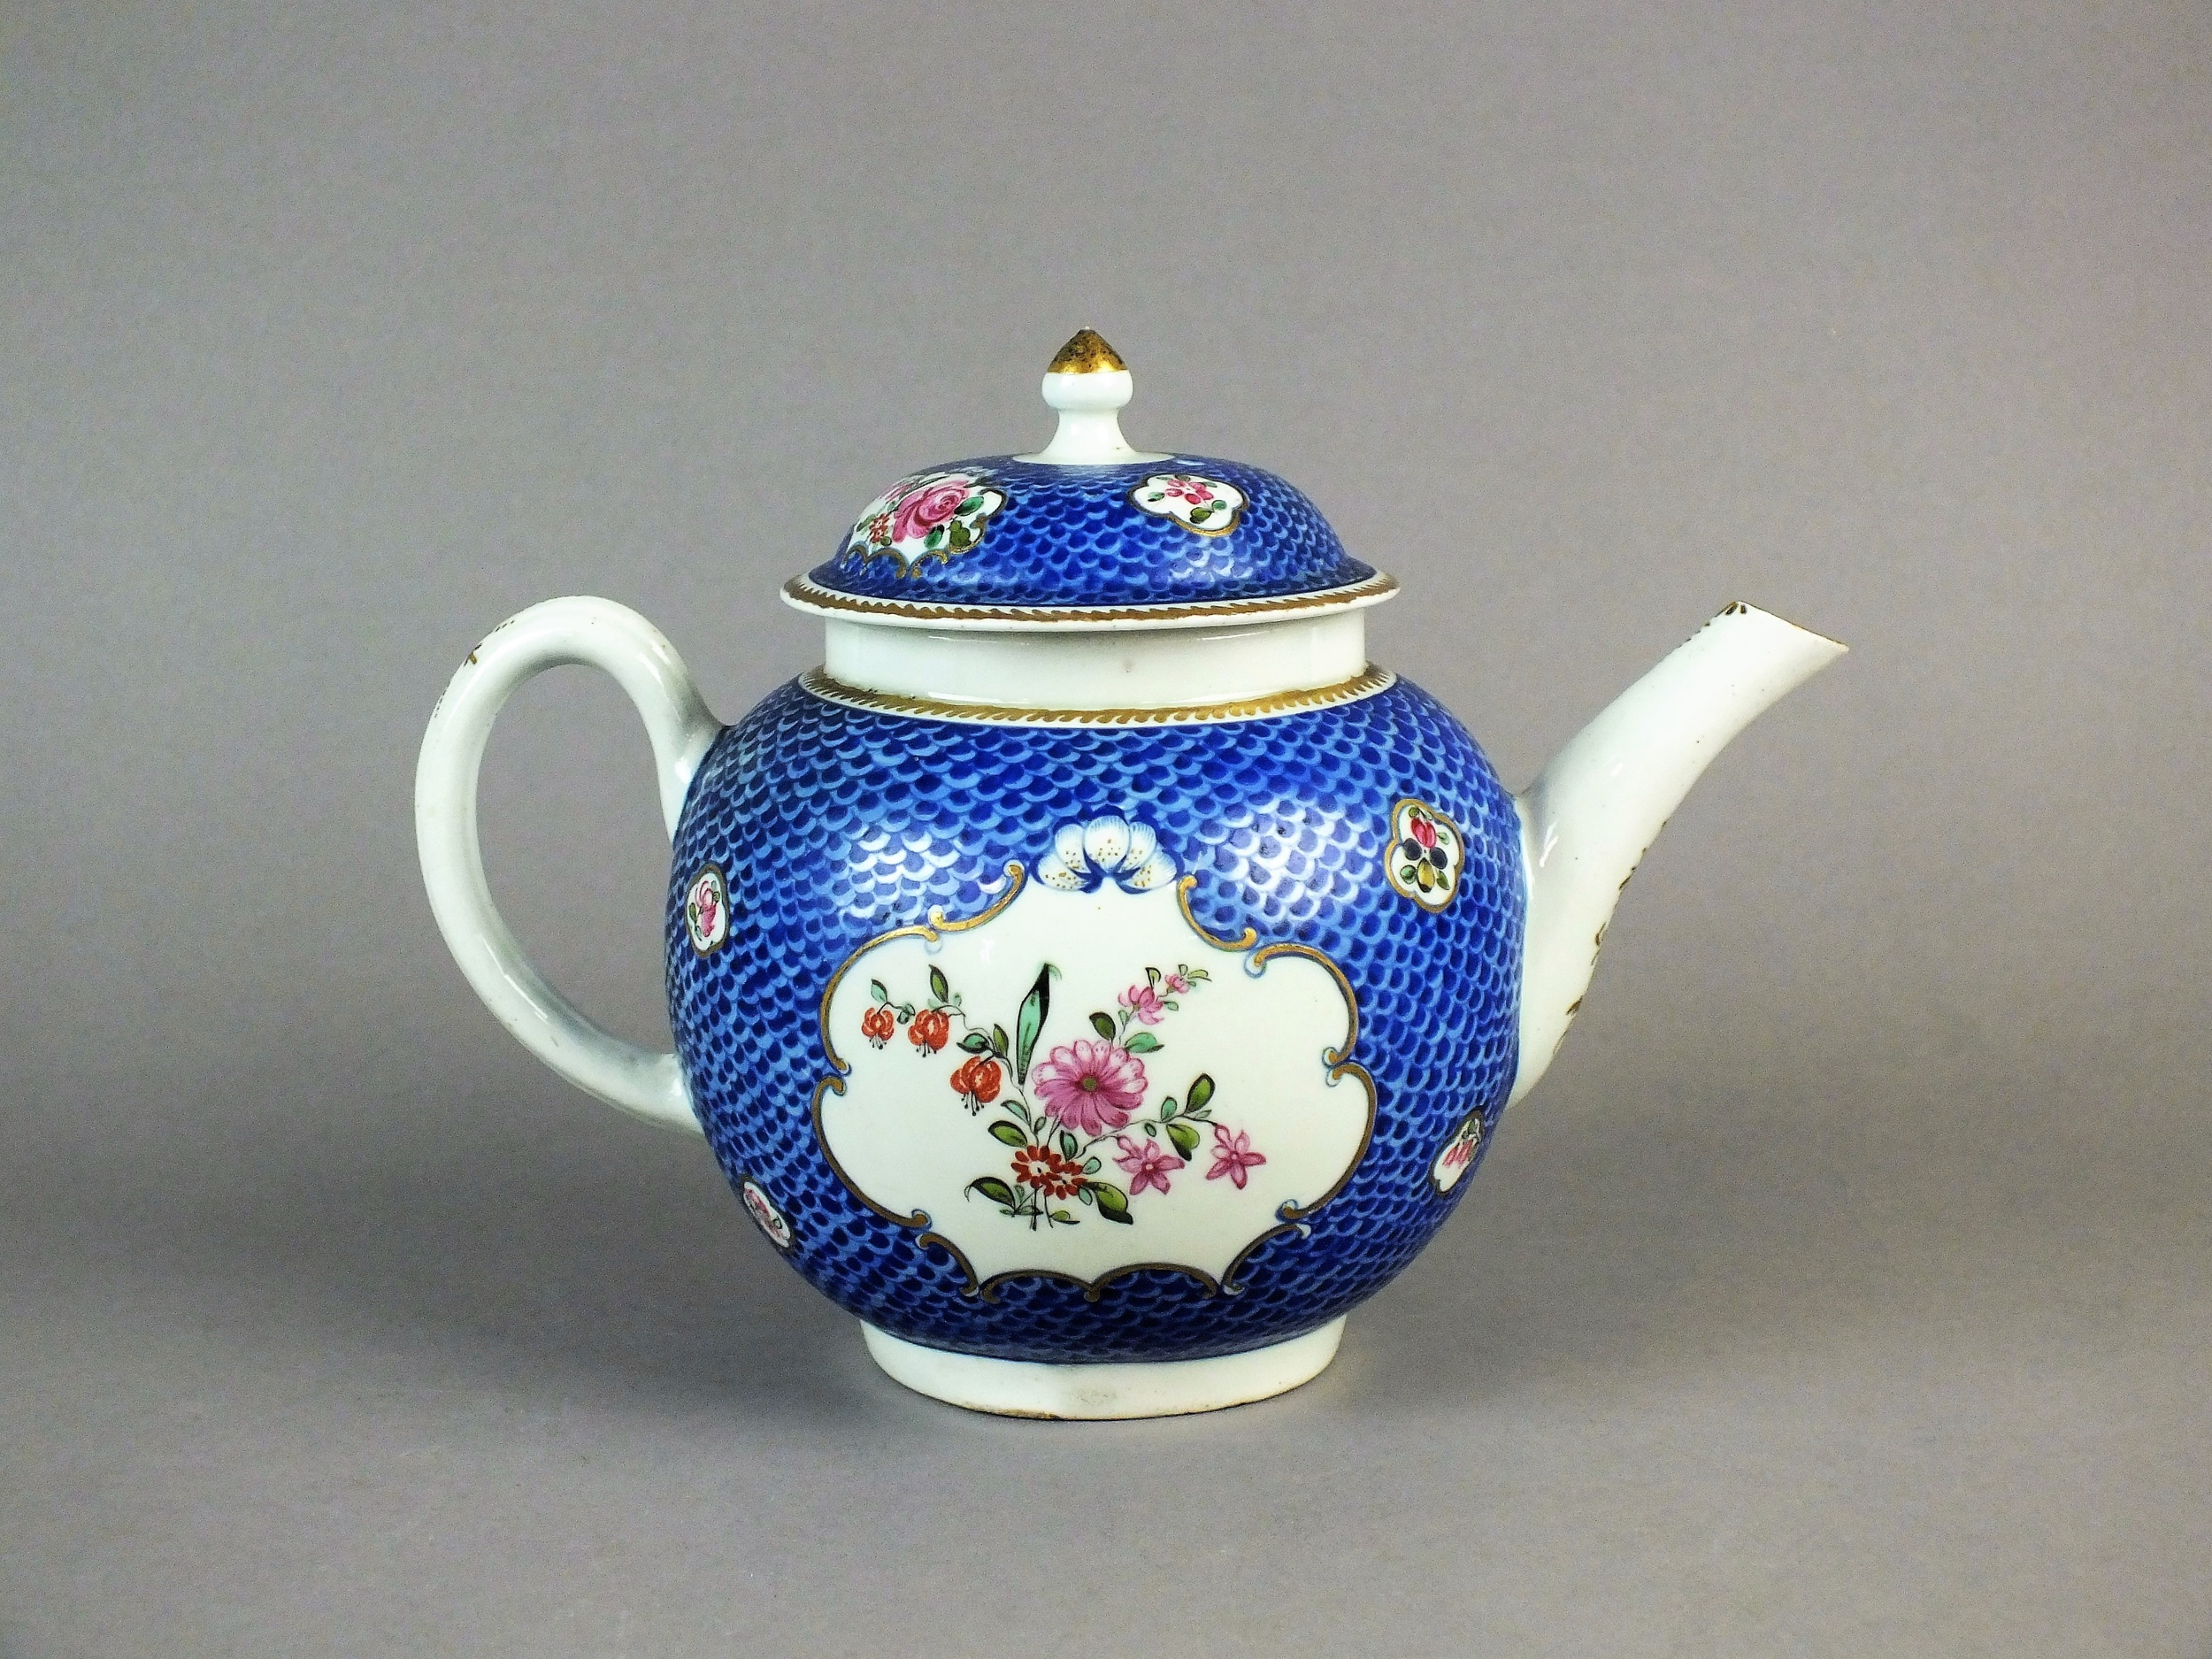 Lot 301: A Philip Christian & Co teapot and cover circa 1770-75 enamelled with flowers in shaped panels reserved on a bright blue scaled ground, handle and spout with gilt foliate decoration,  unmarked, 16cm high  Provenance: Ex. C E Hanley Collection - purchased from Simon Spero, 4th April 2001. Previously in the Rous Lench Collection. Illustrated: Maurice Hillis, Liverpool Porcelain 1756-1804, p.229. Cf. The Victoria and Albert Museum, Accession No. C.96-1957 for a cake plate in the same pattern. Previously sold at Woolley and Wallis in 2016. Estimate: £1,500 - £2,000